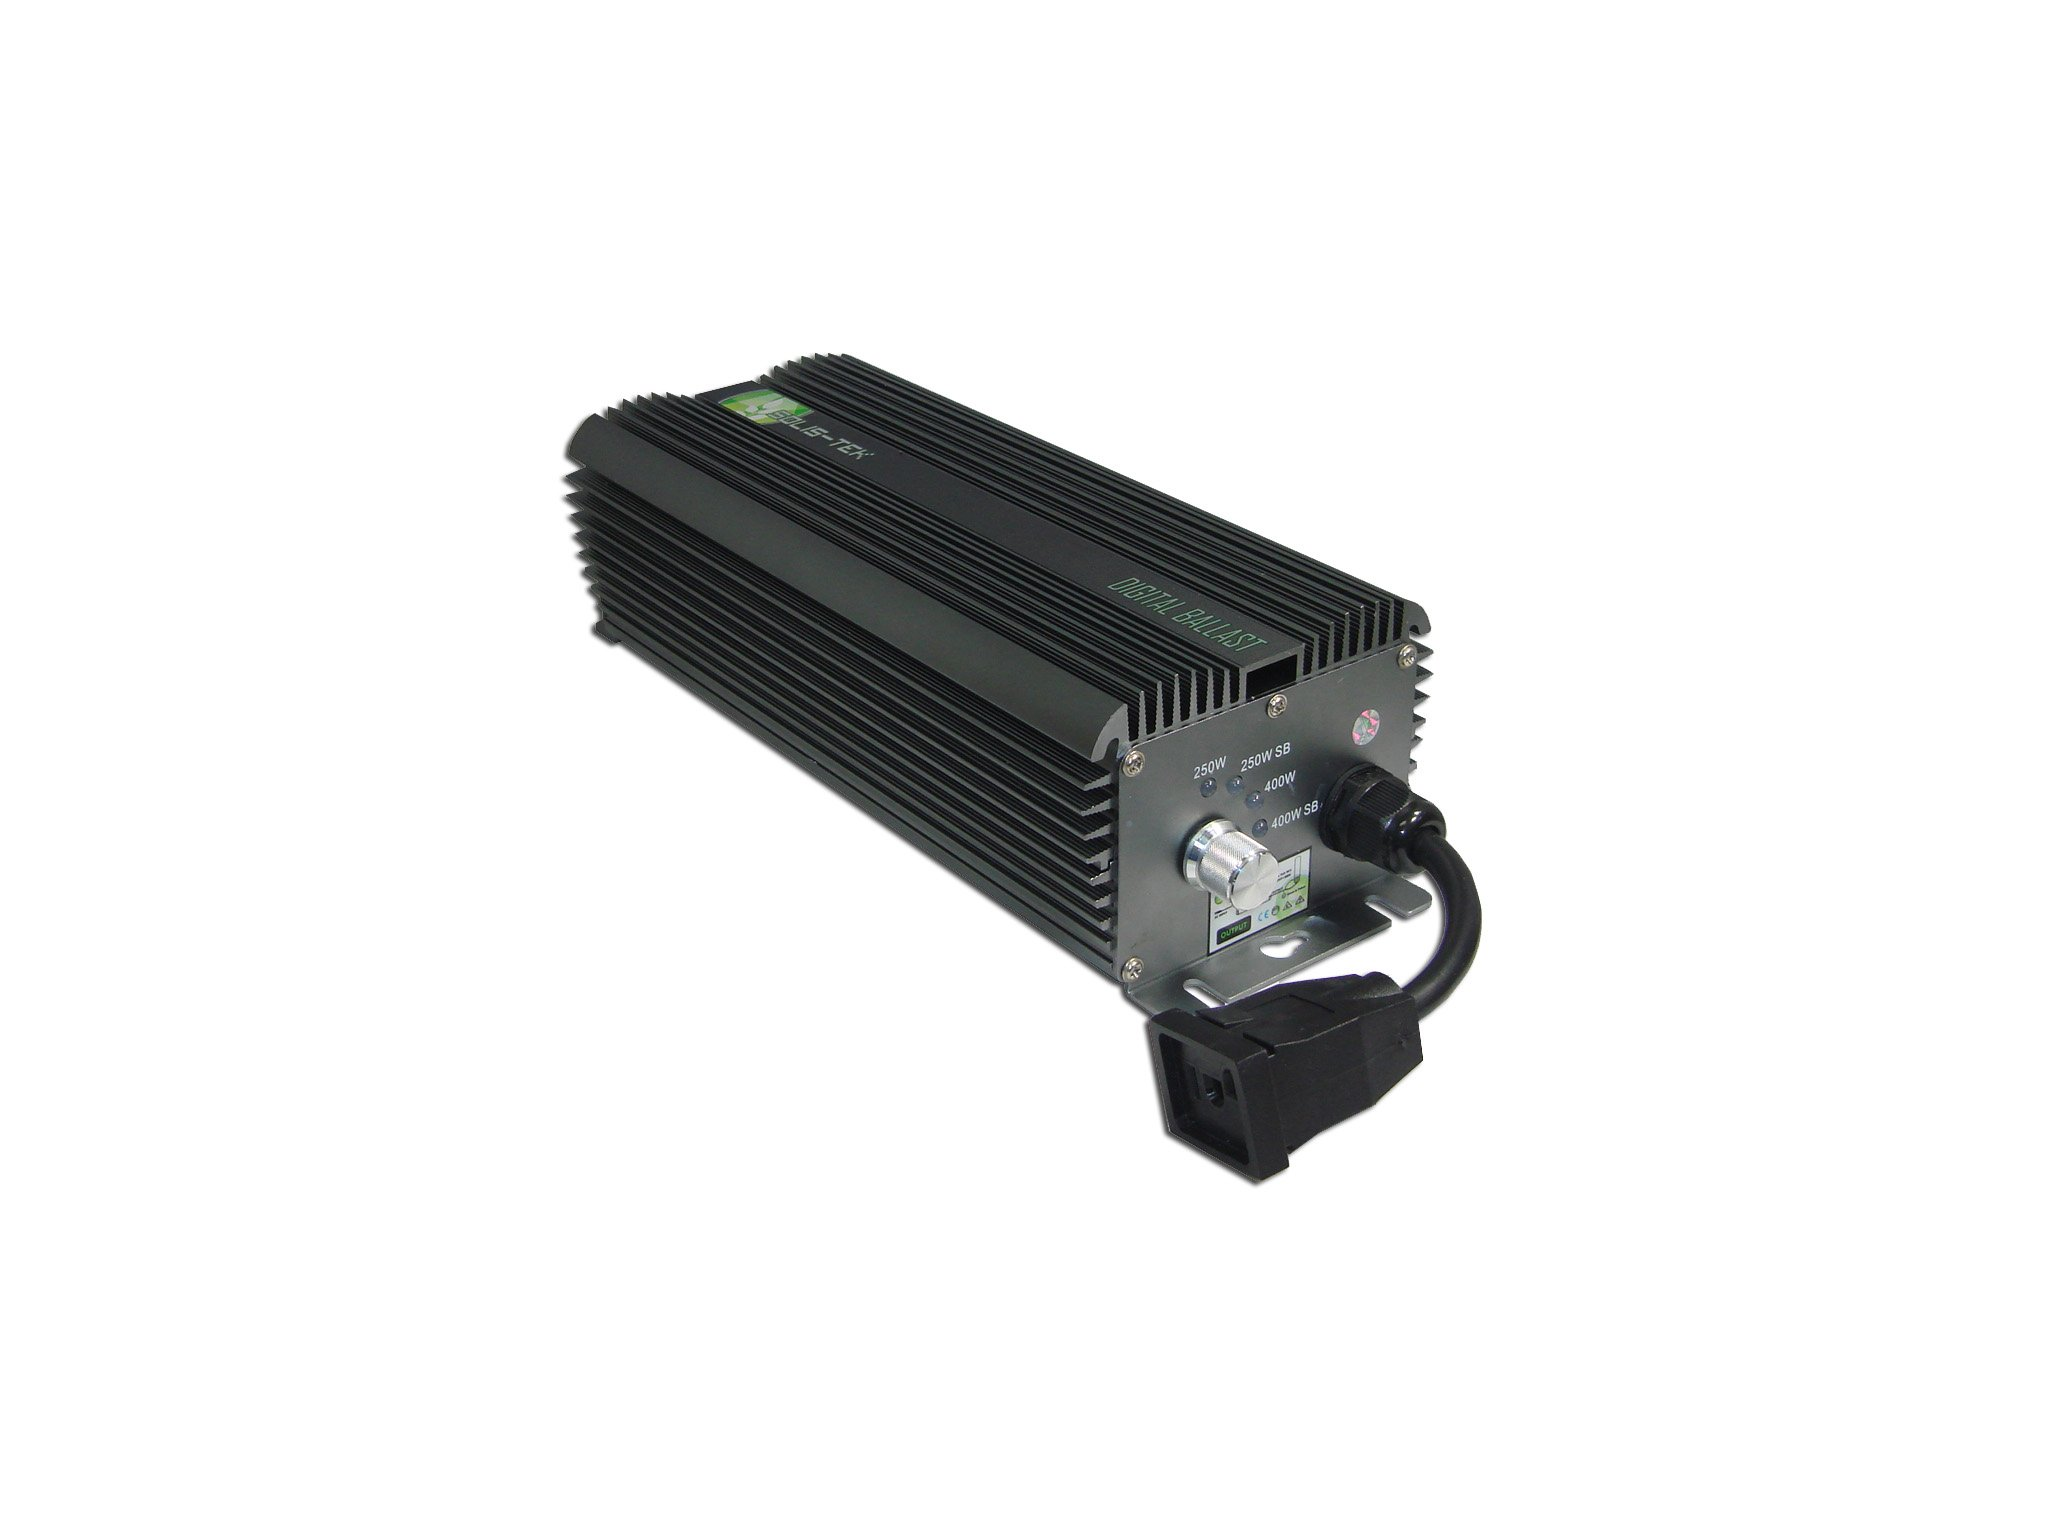 SolisTek 400W Digital Ballast by Solis Tek (Image #1)